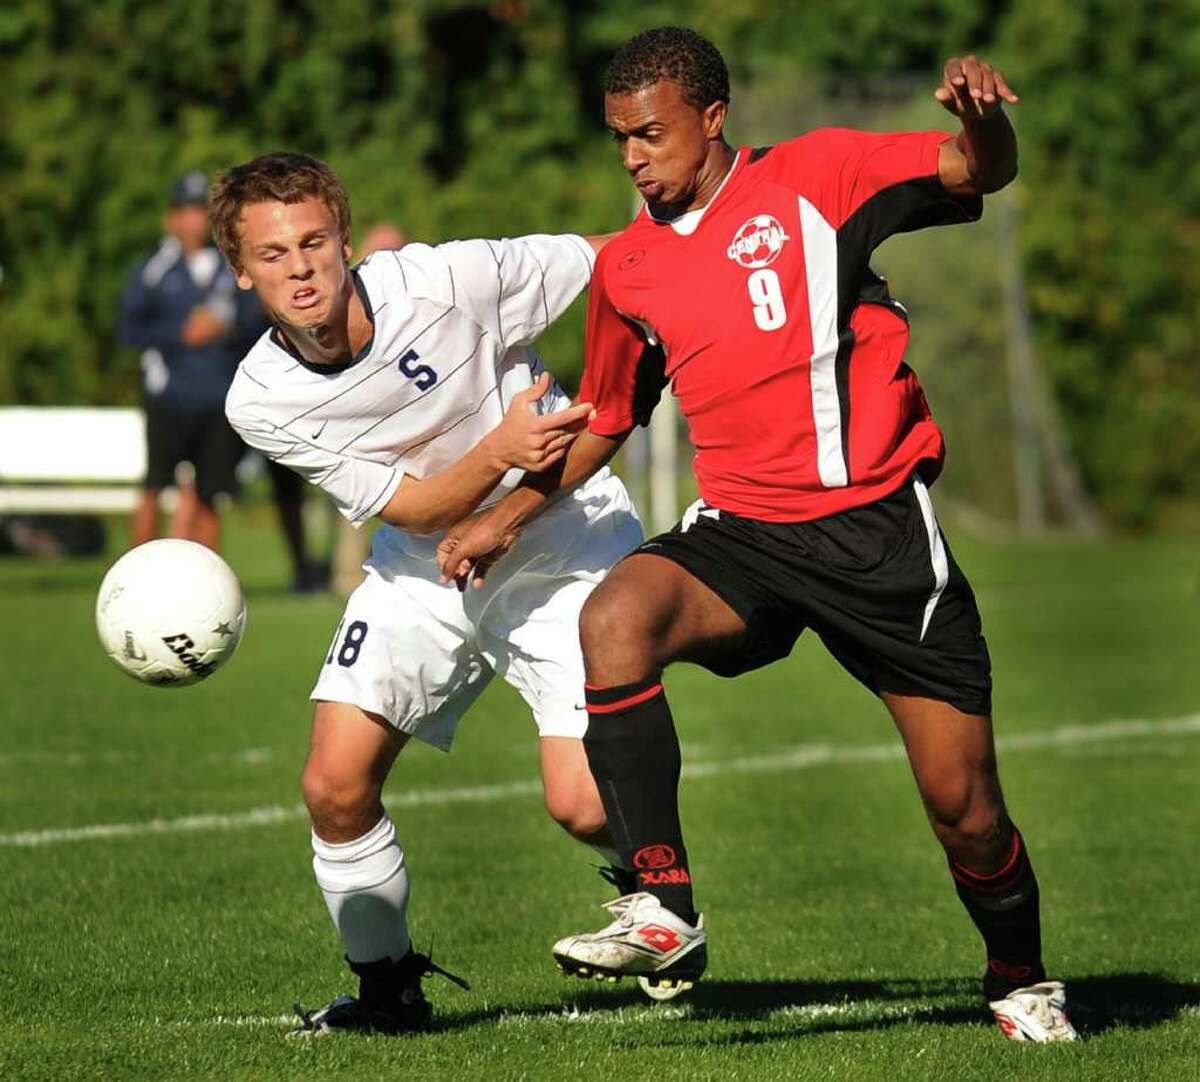 Staples' Steven Denowitz, left, and Bridgeport Central's Antonio DaGraca, play the ball during their FCIAC boys soccer matchup at Staples High School in Westport on Monday, September 20, 2010.